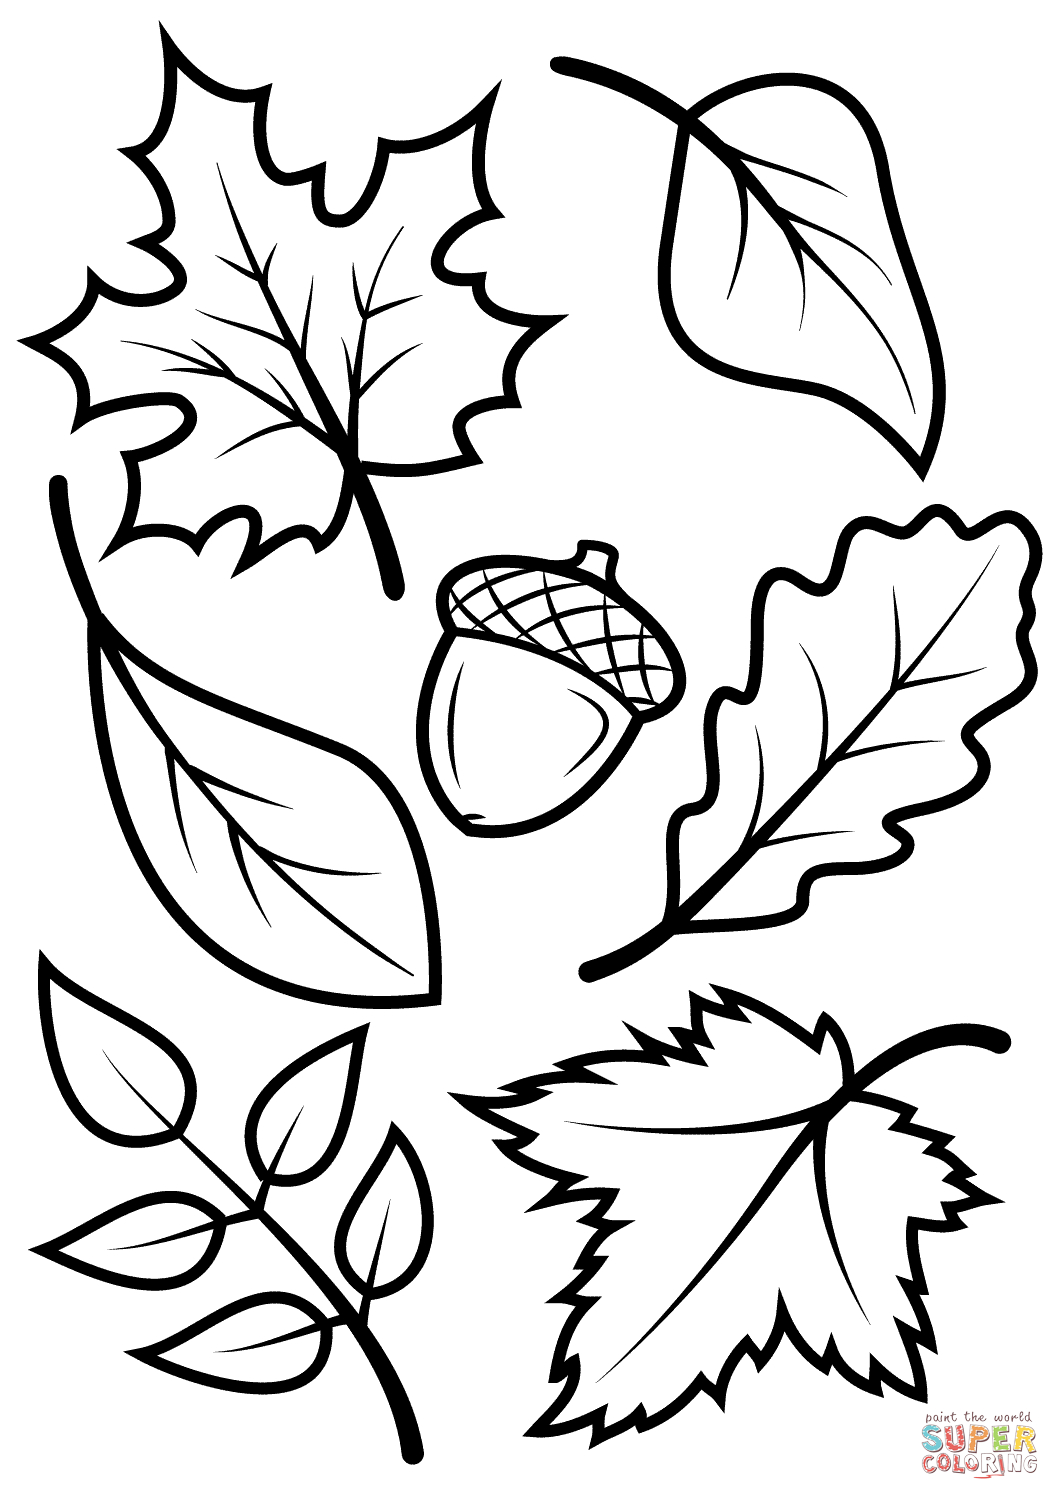 Fall Leaves And Acorn Coloring Page | Free Printable Coloring Pages - Free Printable Fall Coloring Pages